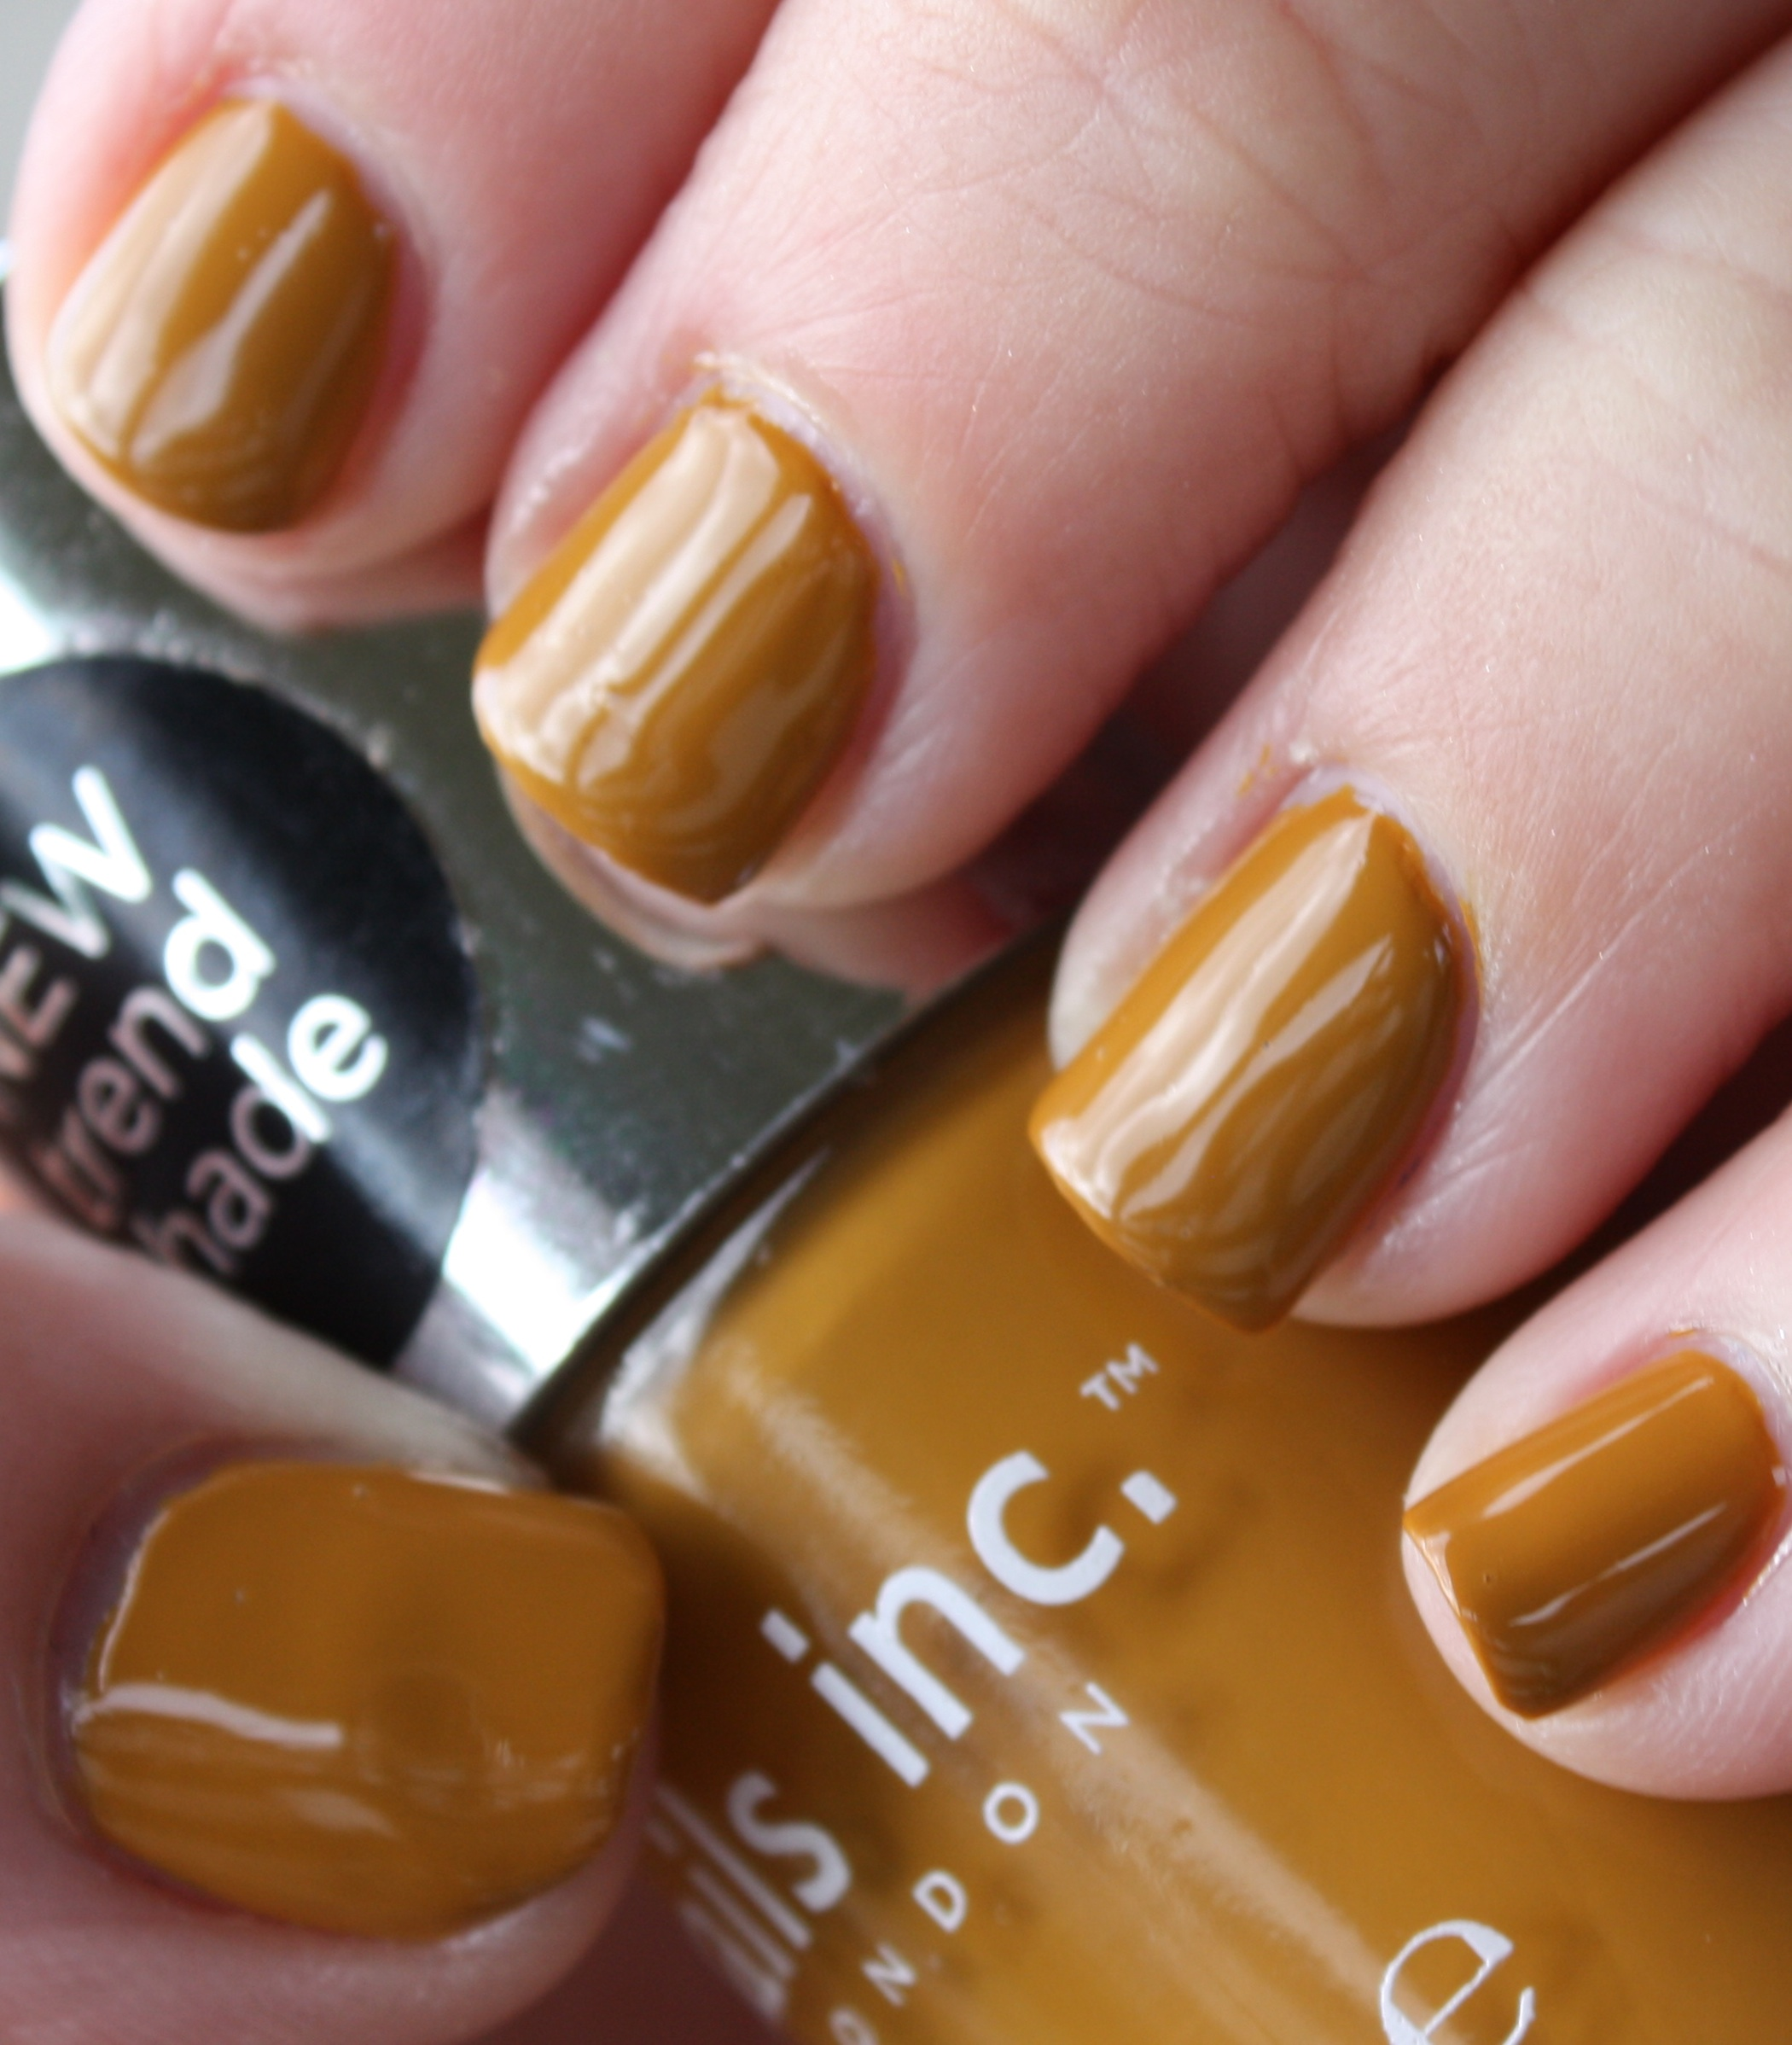 Nails, Inc. Hampstead Gardens – horrendous color